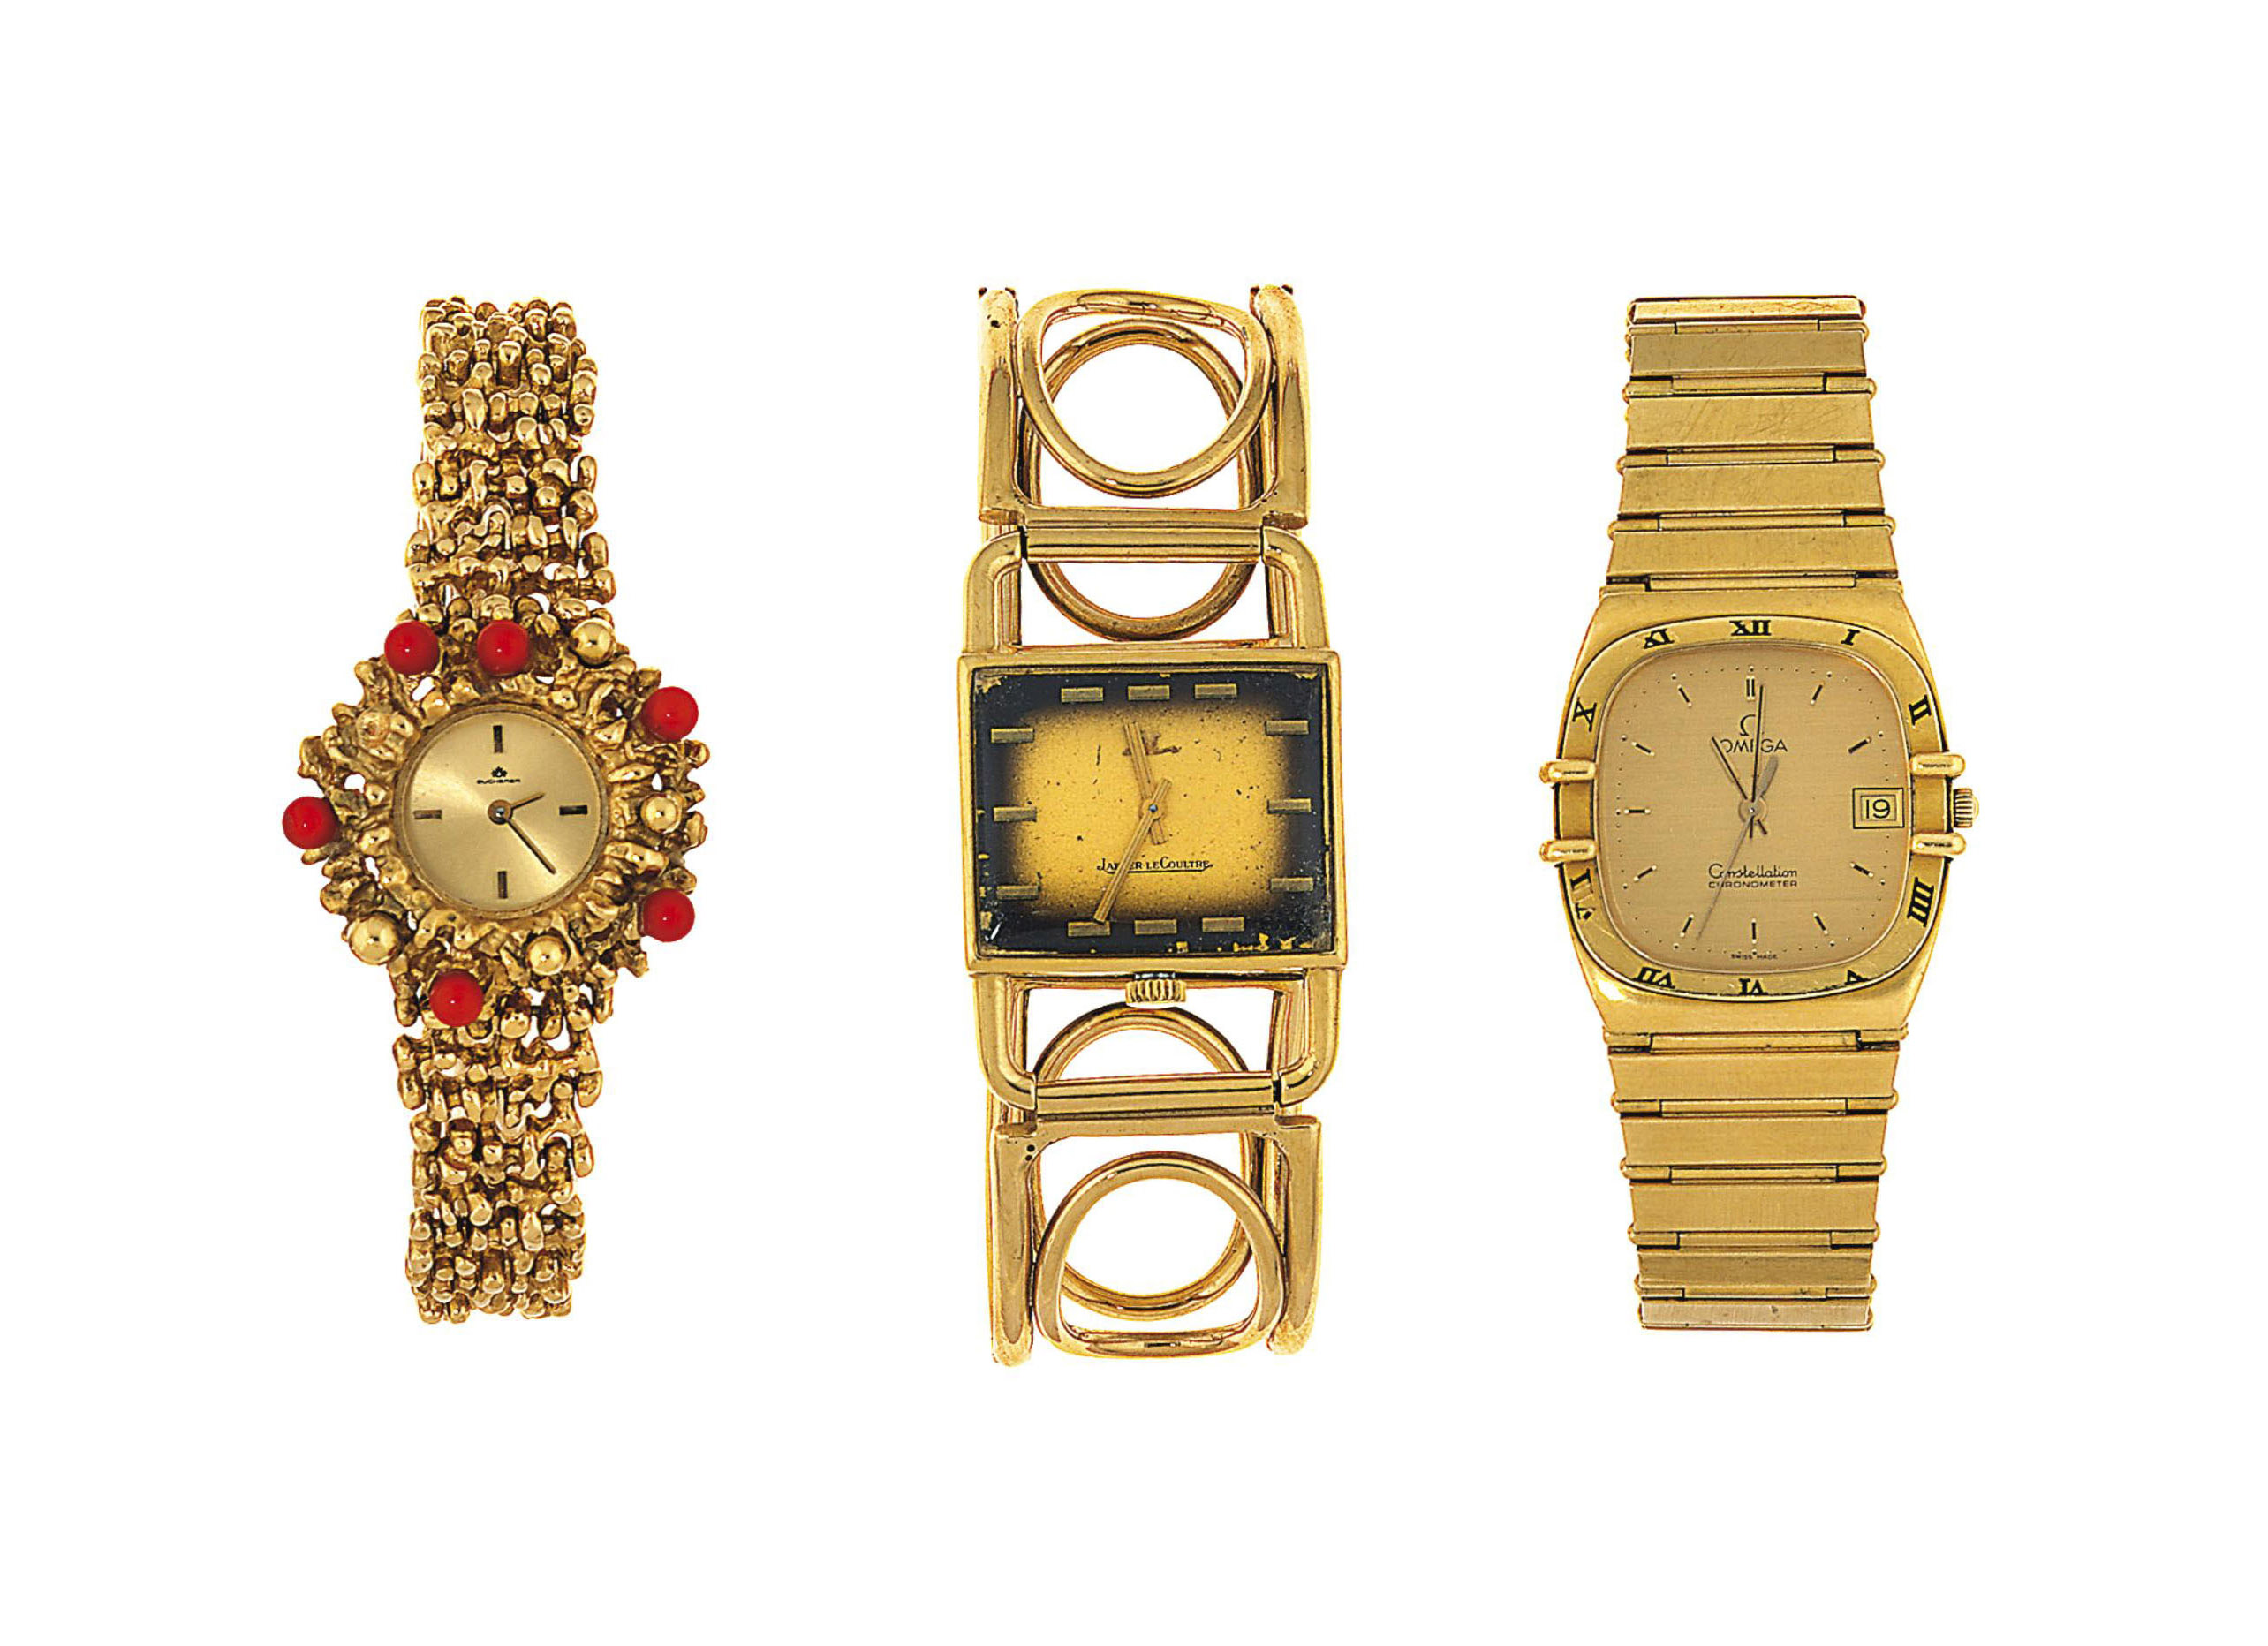 A group of five wristwatches